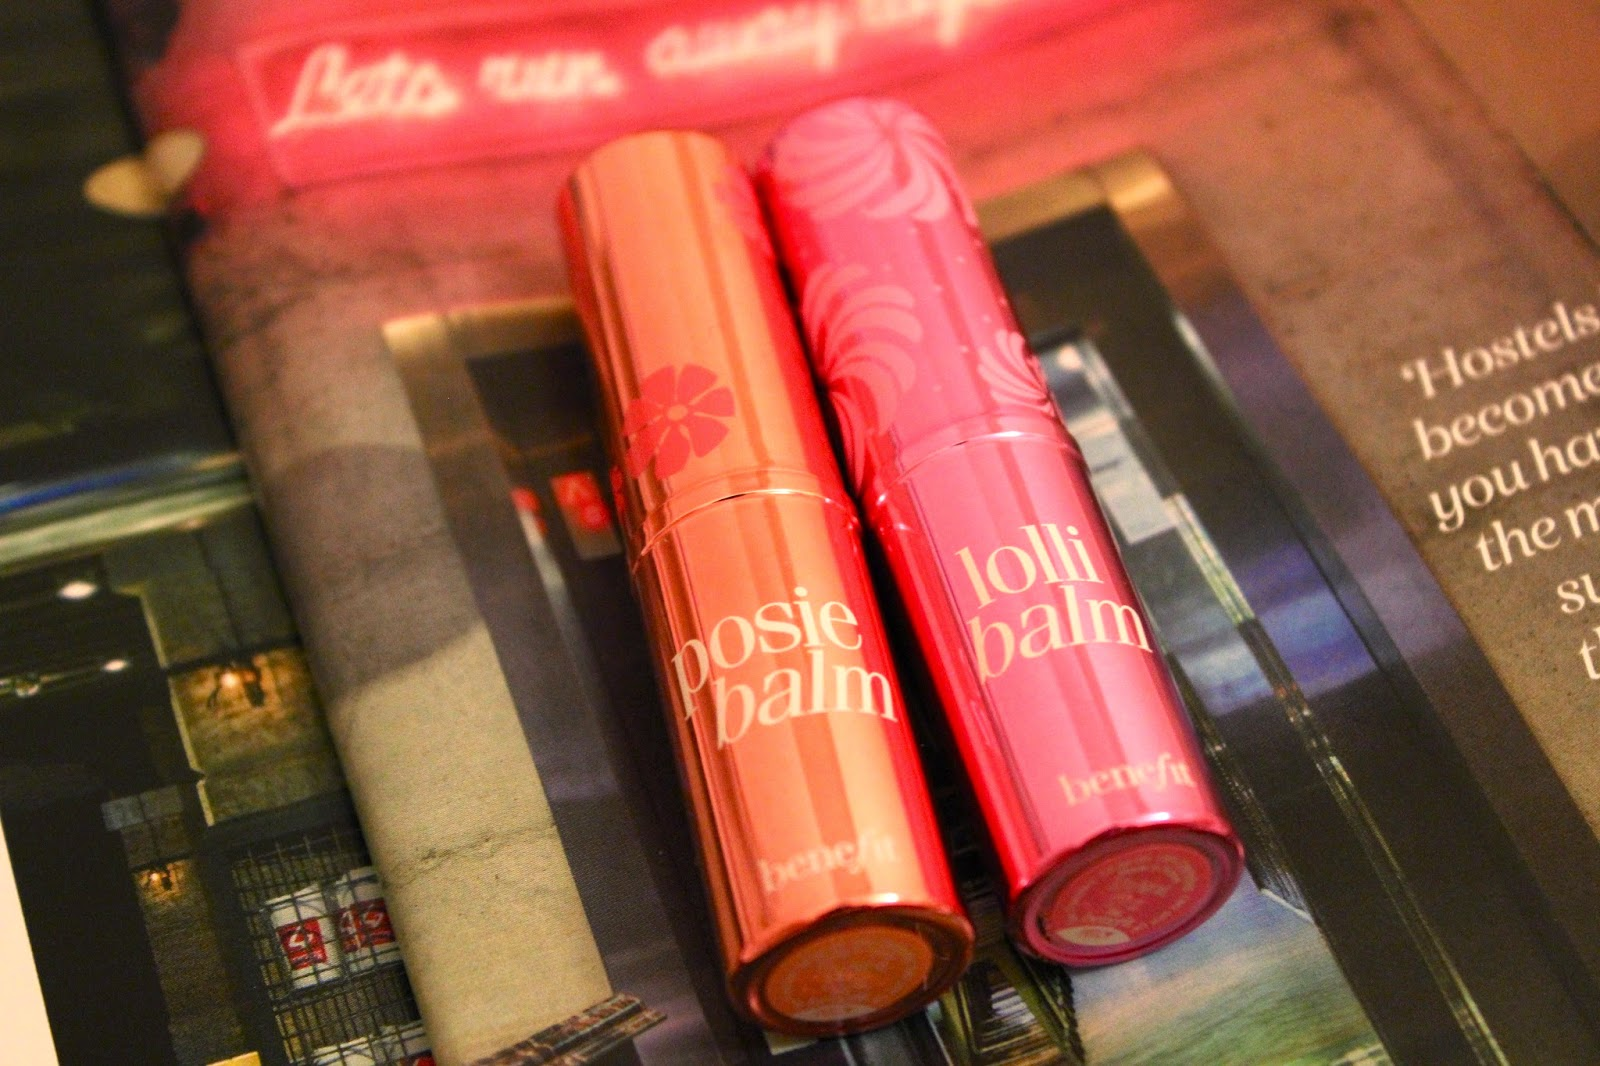 Benefit Posiebalm & Lollibalm Tinted Lip Balms Review Girl Culture